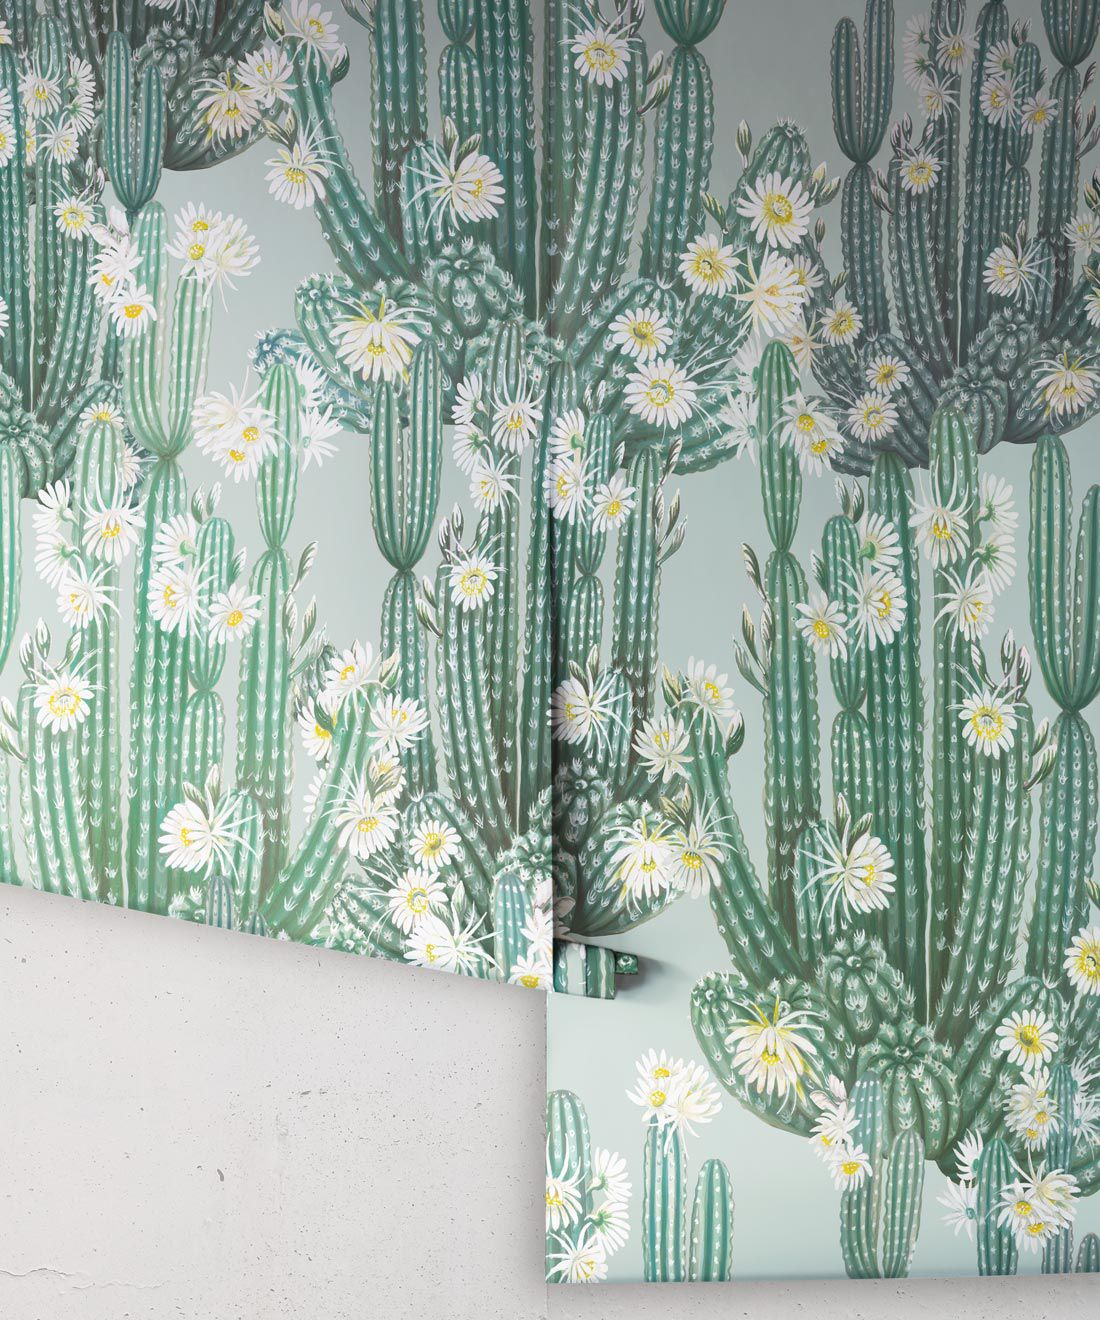 San Pedro Wallpaper Aqua • Cactus Wallpaper • Succulents Wallpaper • Desert Wallpaper Rolls